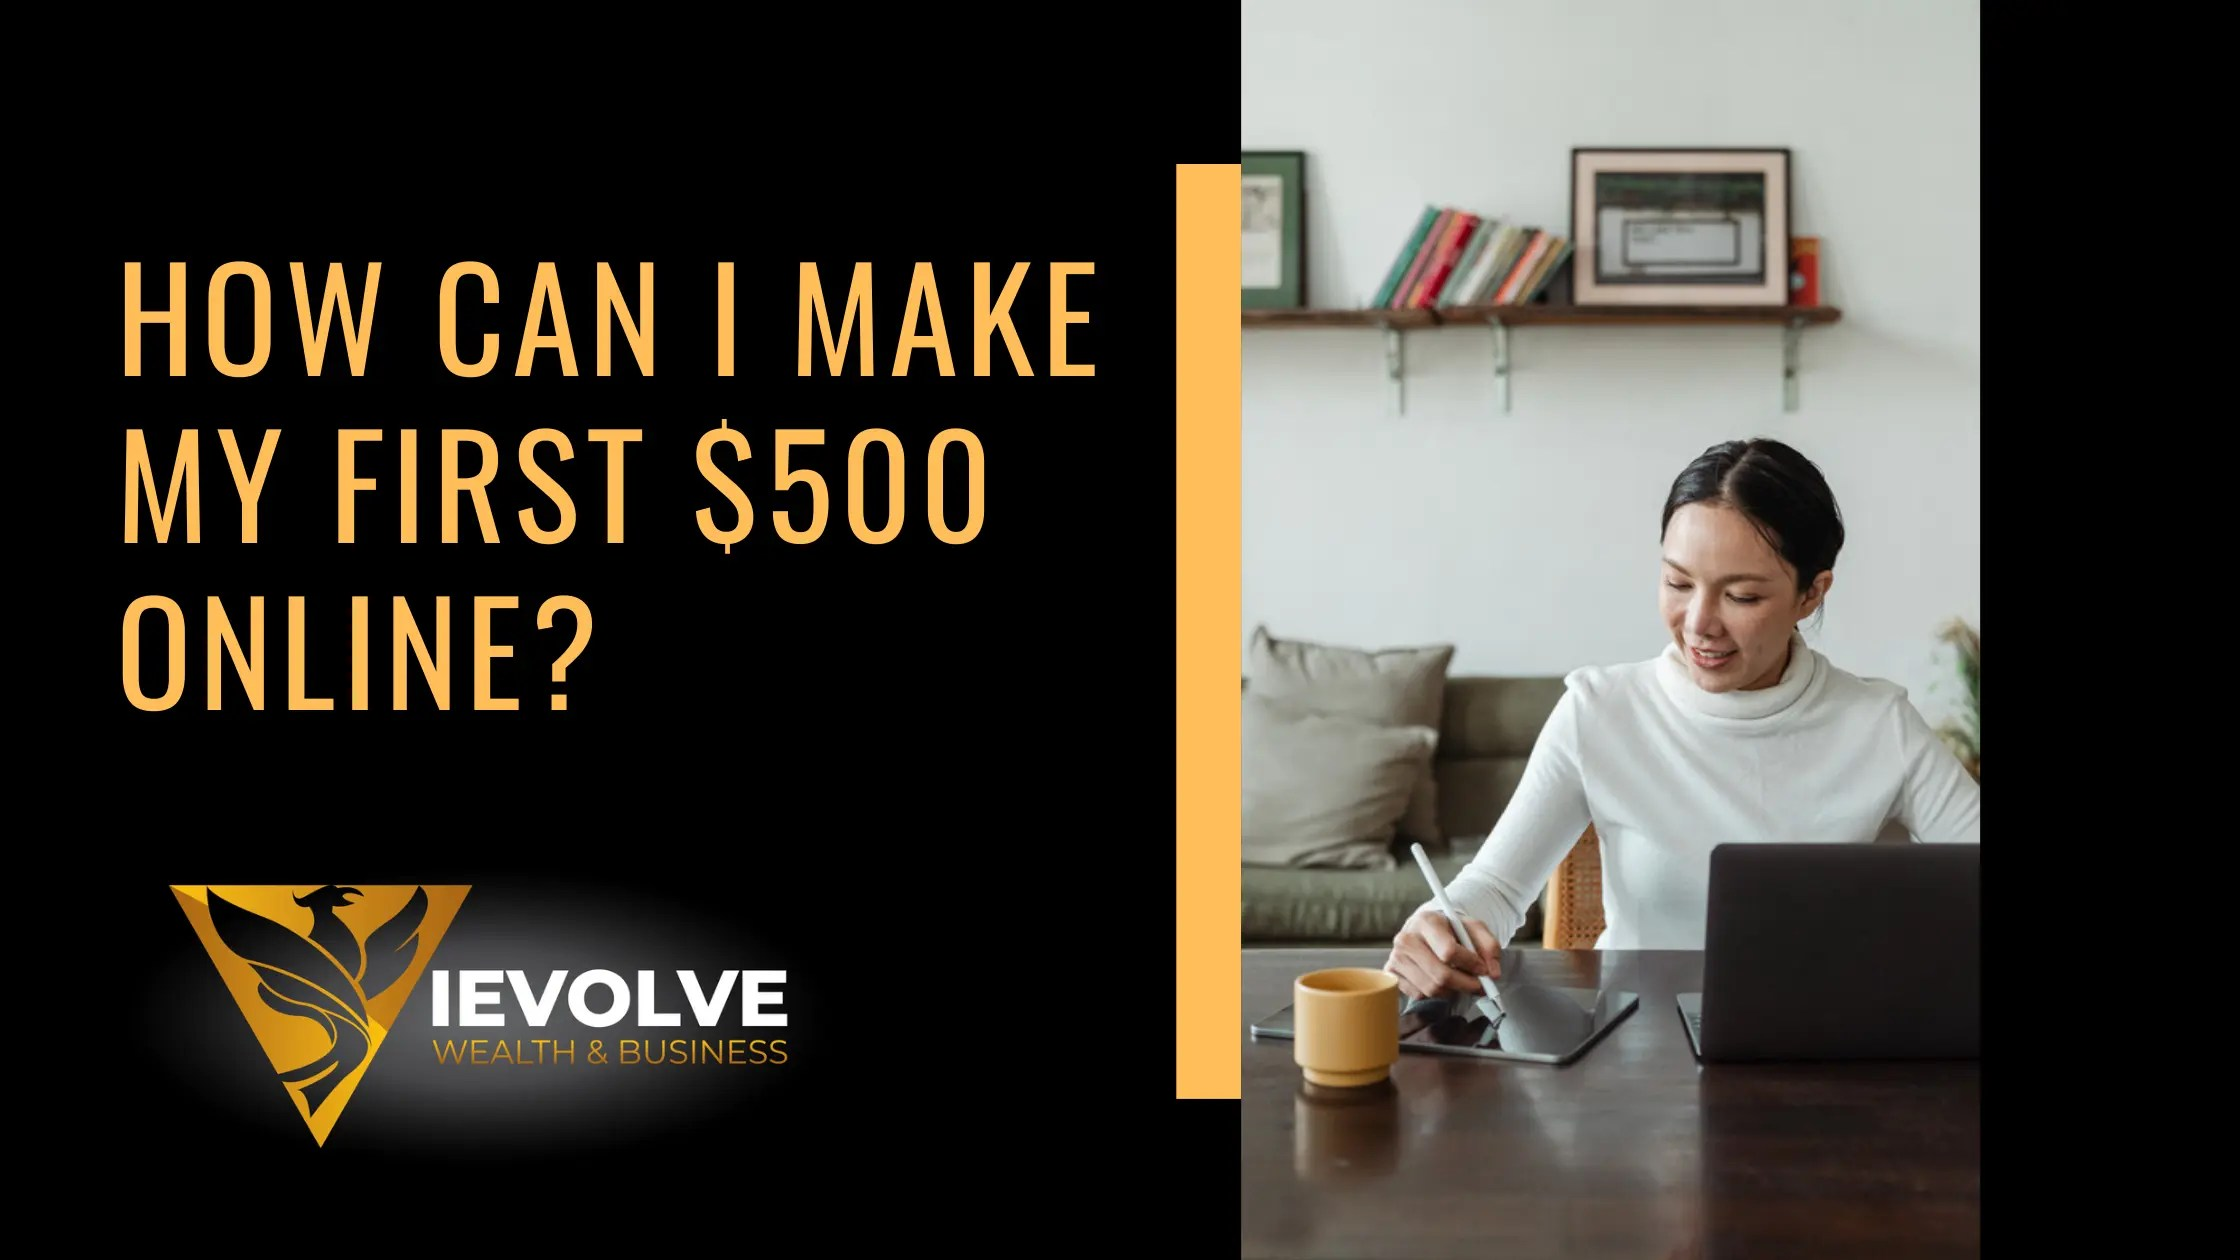 HOW CAN I MAKE MY FIRST $500 ONLINE?